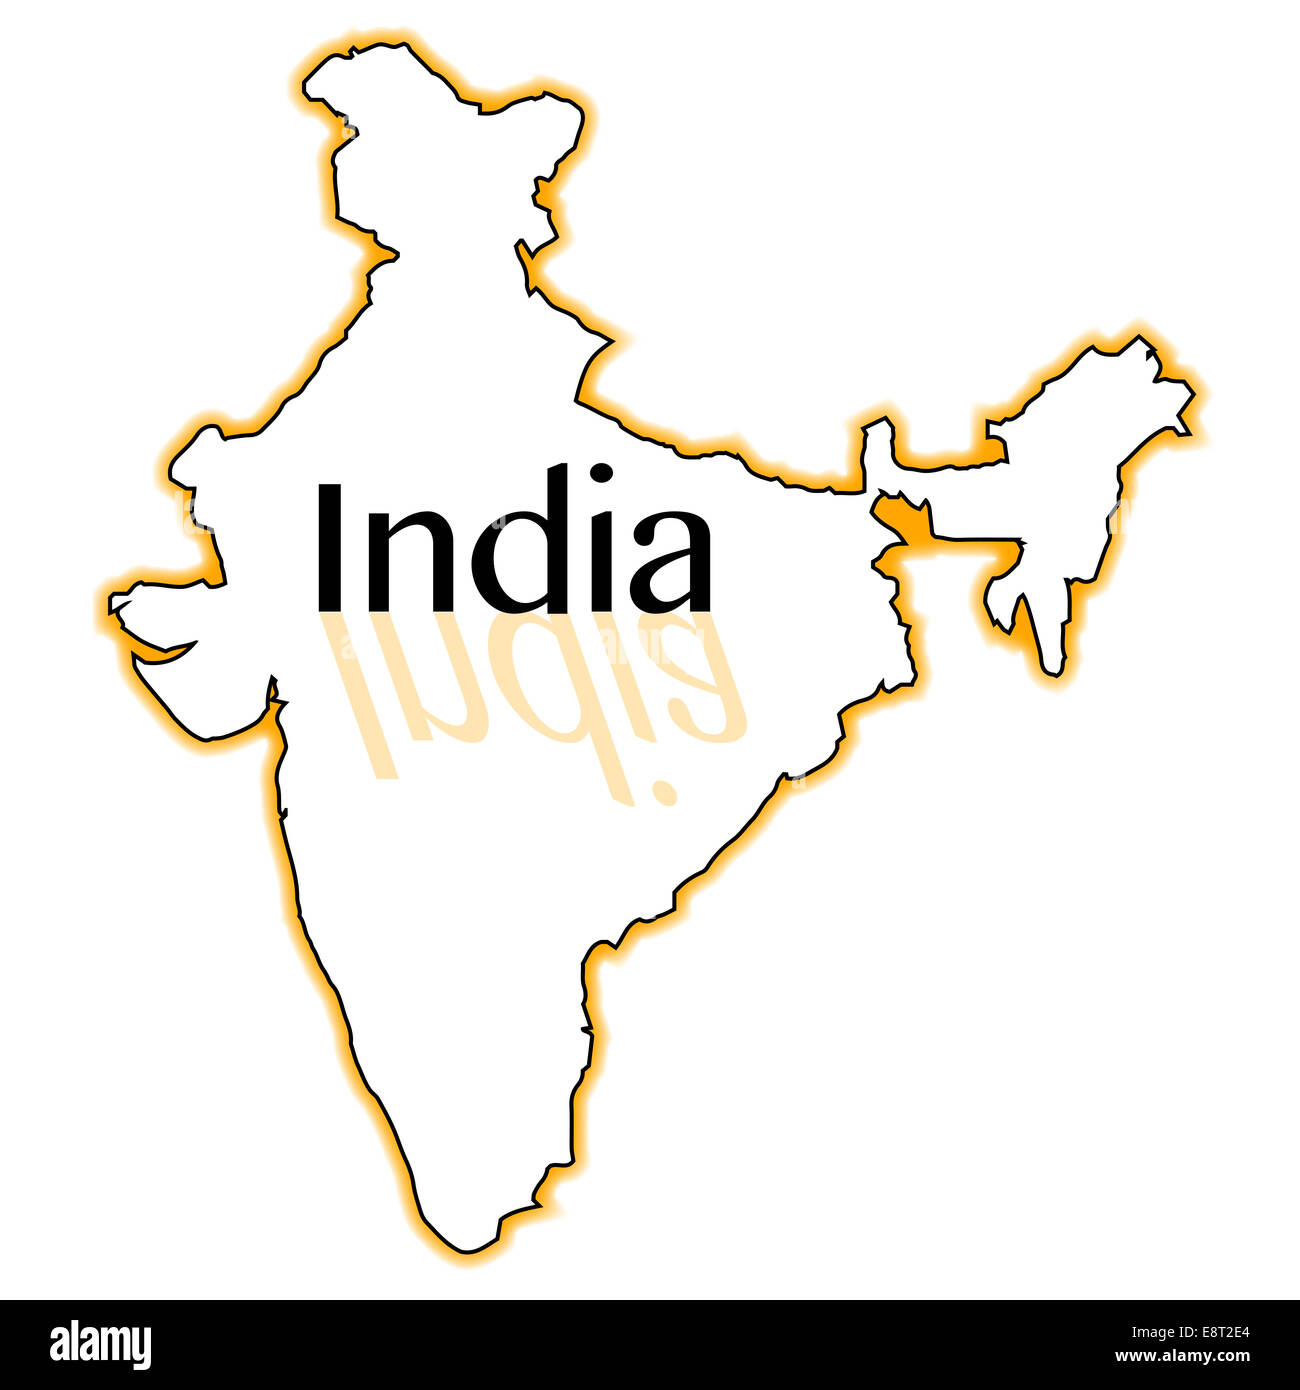 Outline Map Of India Over A White Background Stock Photo 74287532